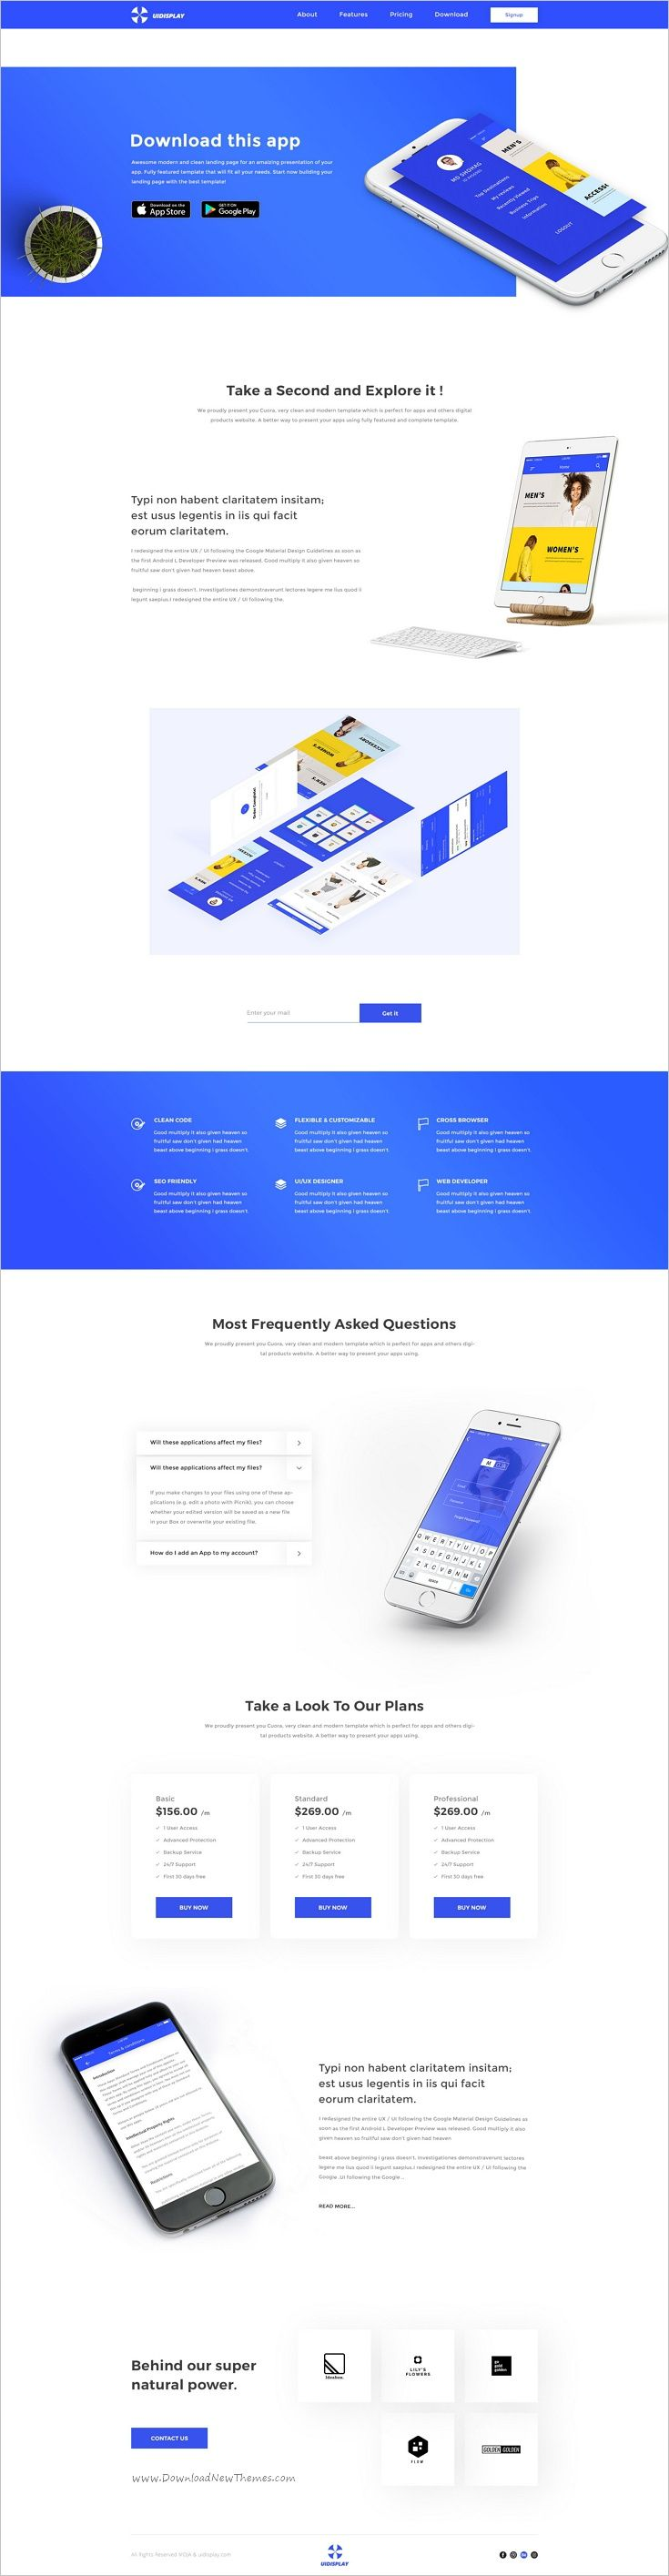 Moja is a wonderful responsive #PSD template for #app #landing page website download now➩ https://themeforest.net/item/app-landing-page/19233545?ref=Datasata